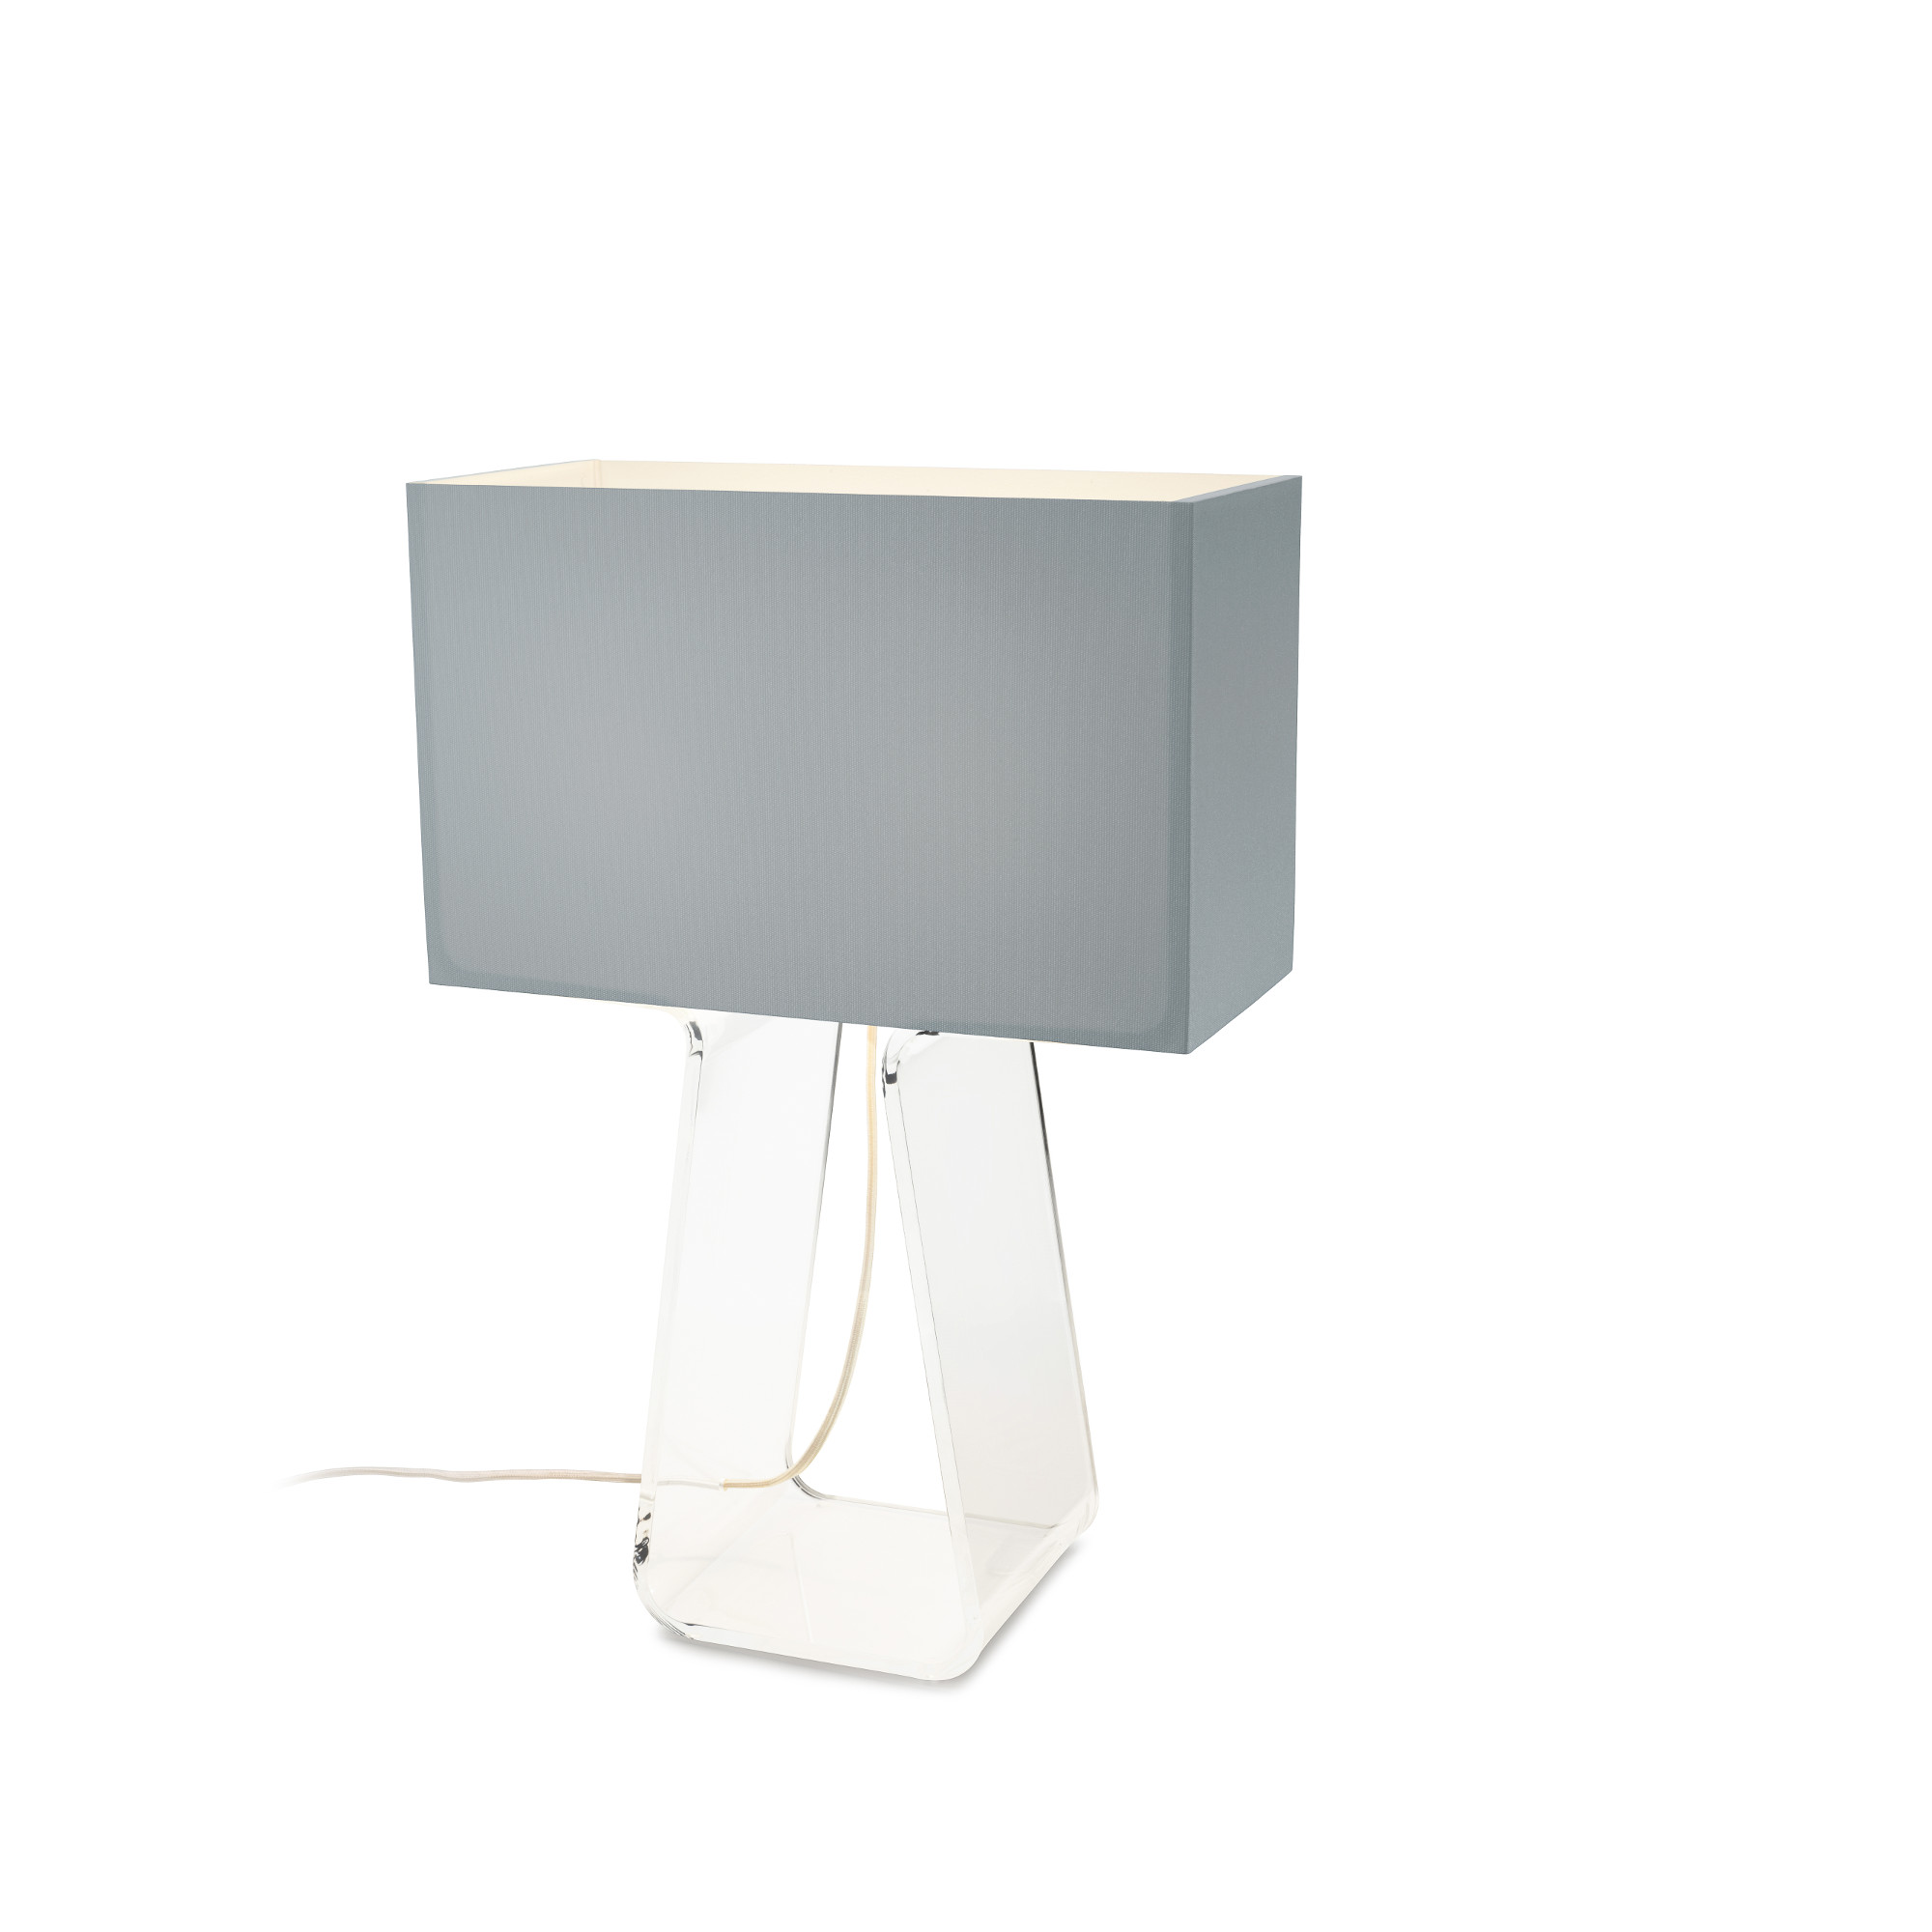 Lamp Slv Tube Top Classic Table Lamp By Pablo Tt 21 Slv Clr